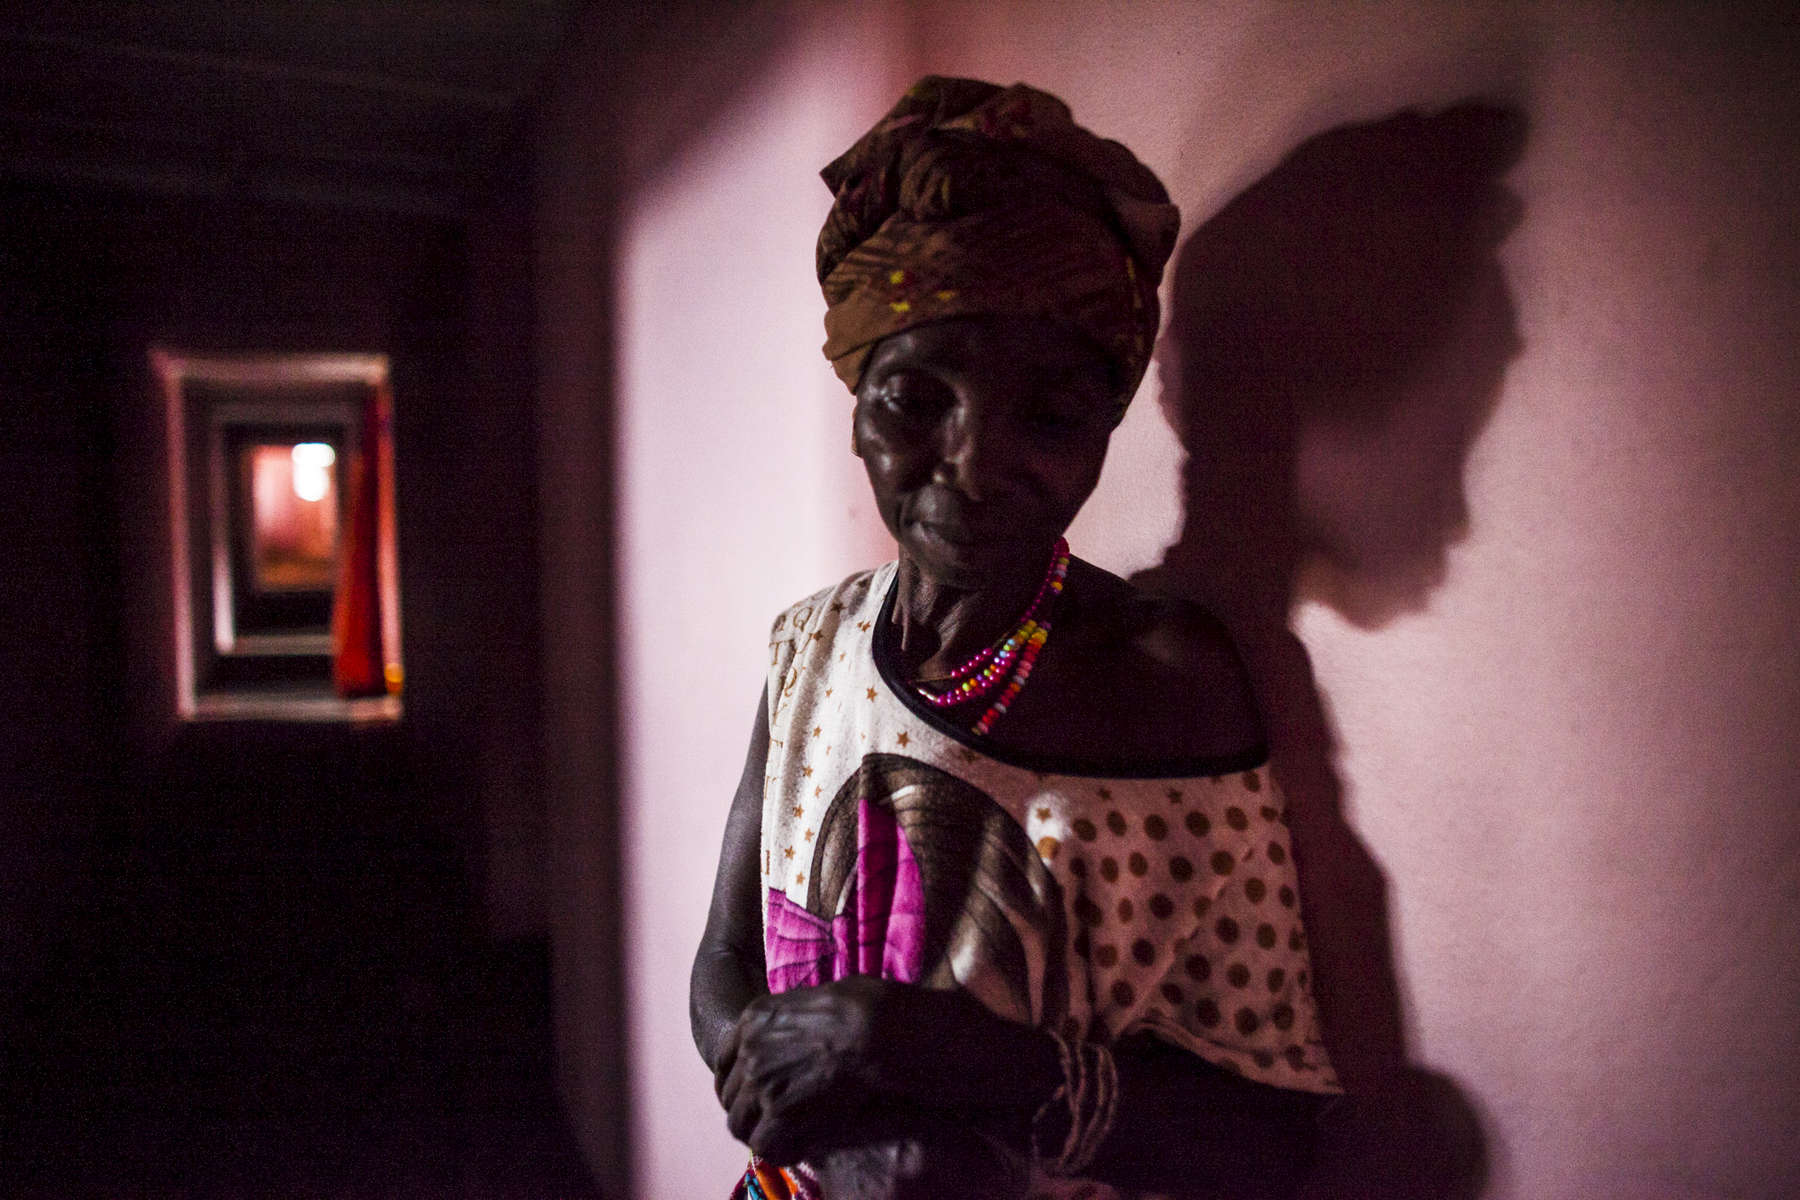 Koloneh Koroma, 6os, left with cataracts in both her eyes after recovering from the Ebola virus stands in the hallway of her guesthouse in Freetown, Sierra Leone.